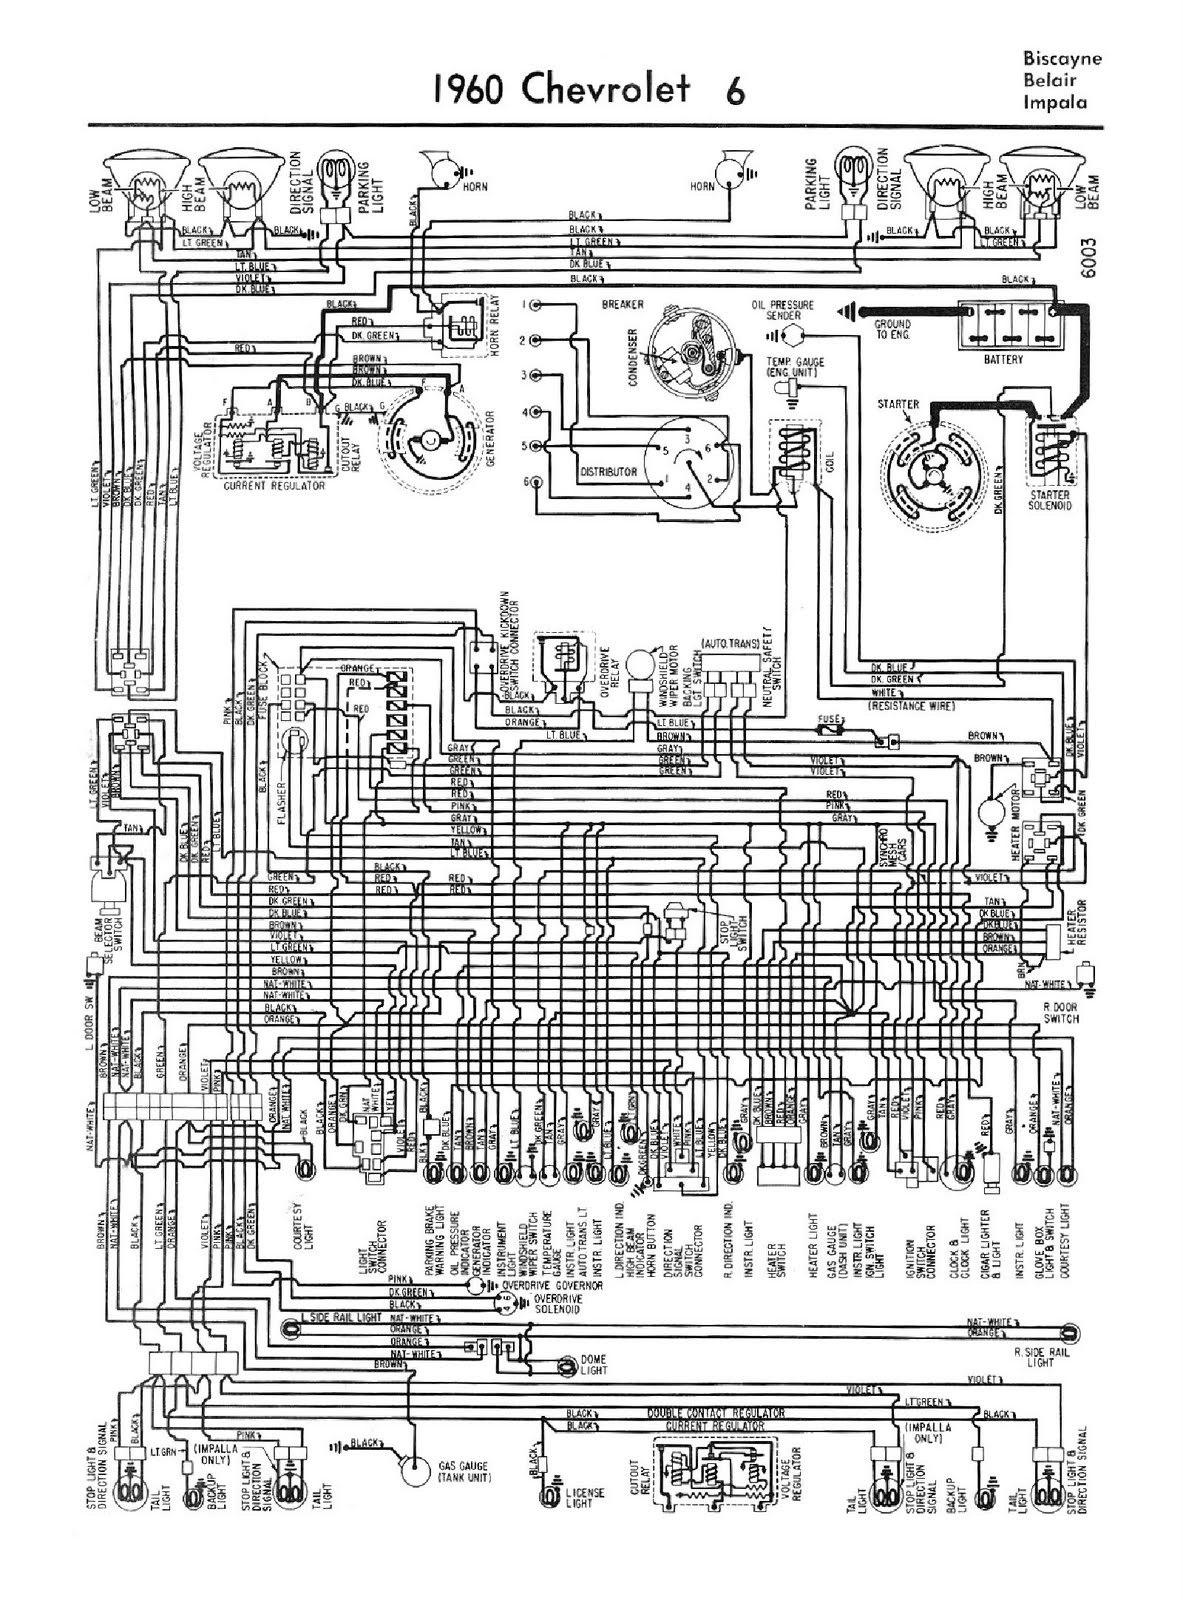 94 Cadillac Deville Fuse Box Golden Schematic Free Auto Wiring Diagrams Diagram 1960 Chevrolet V6 Biscayne Belair And Impala 97